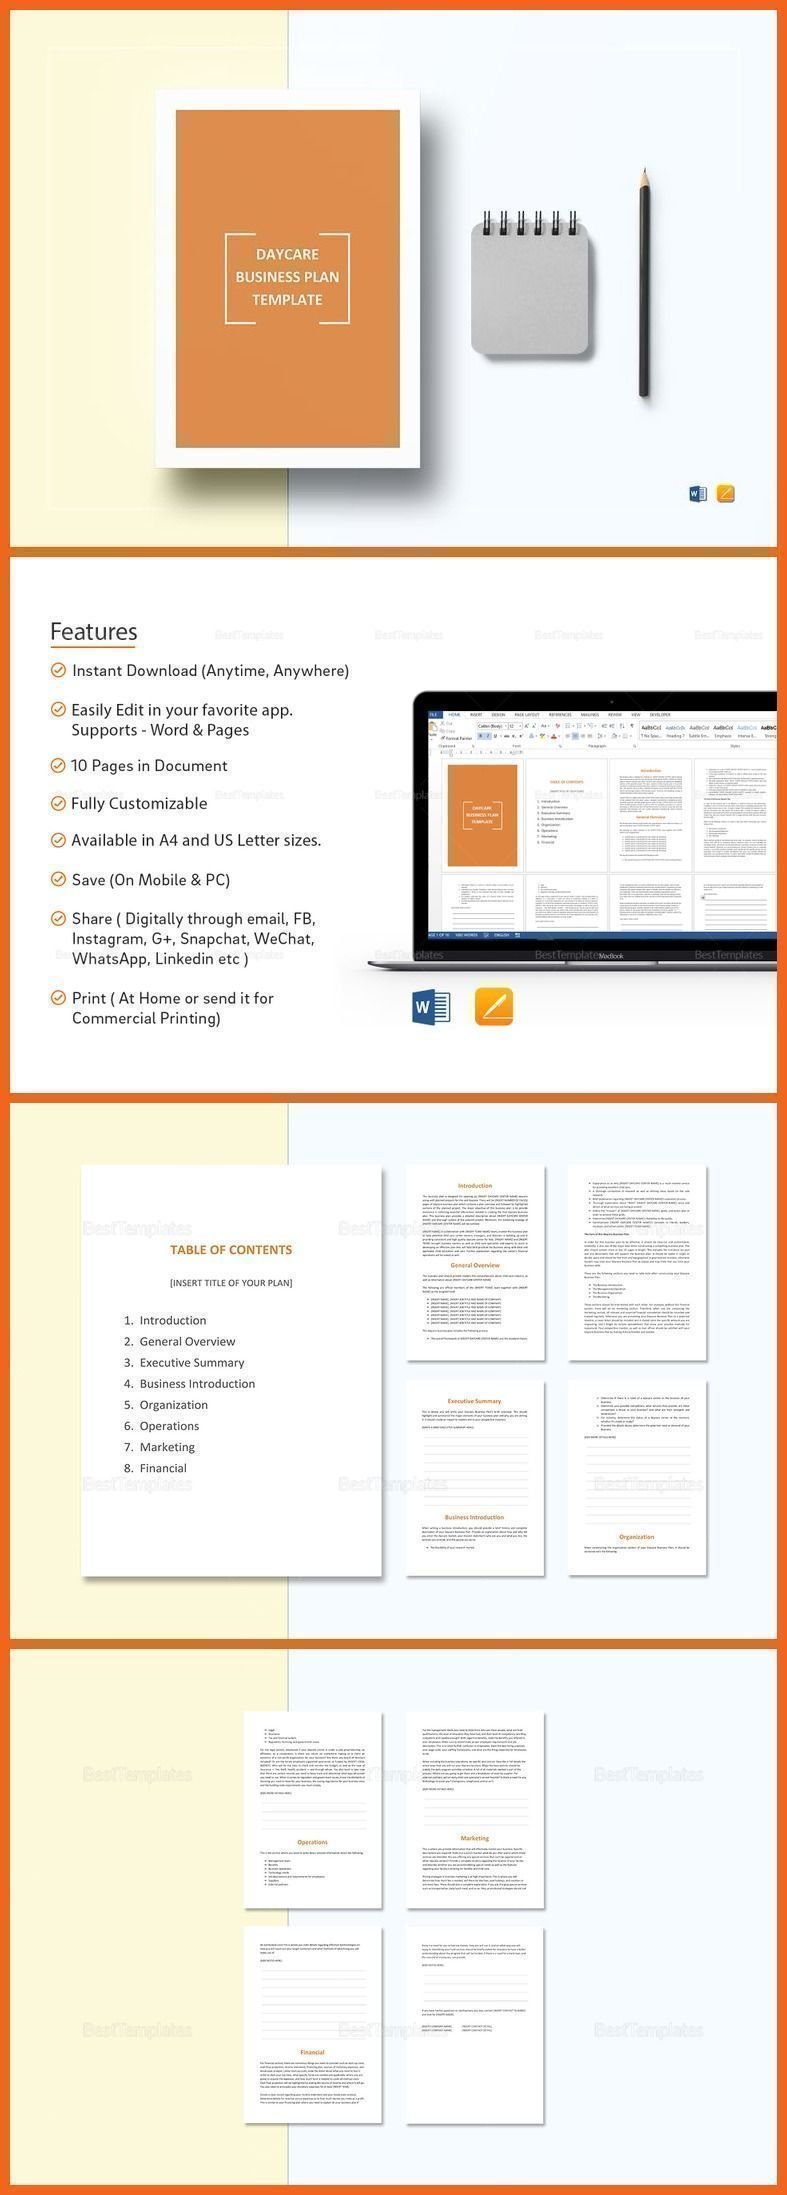 Daycare Business Plan Template 12 Formats Included Ms Word